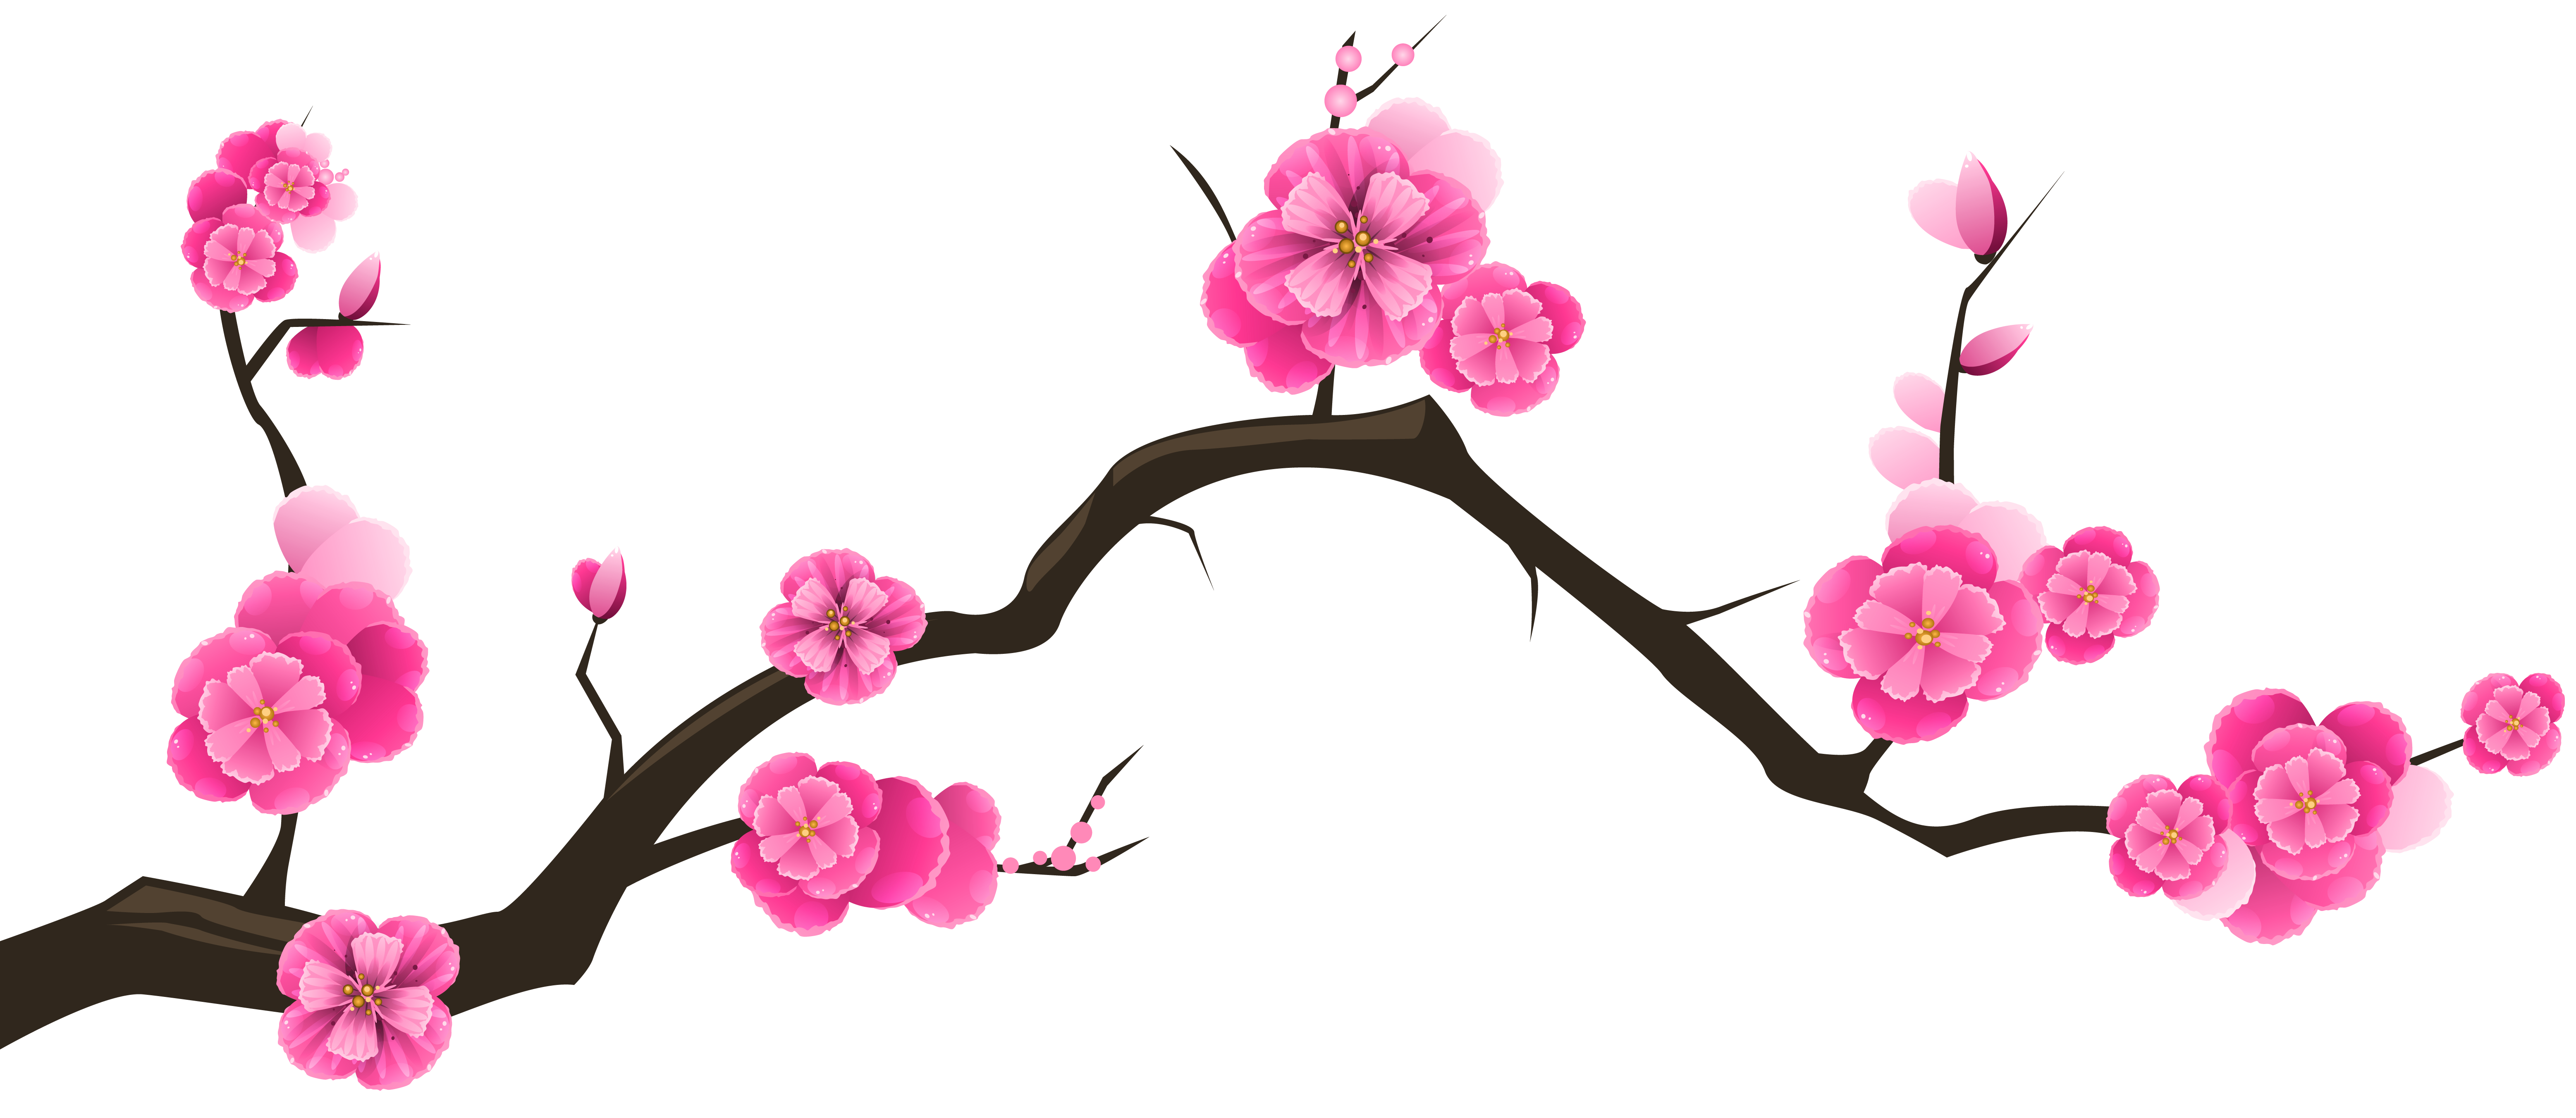 Cherry border clipart free image transparent Cherry blossom borders clipart images gallery for free download ... image transparent